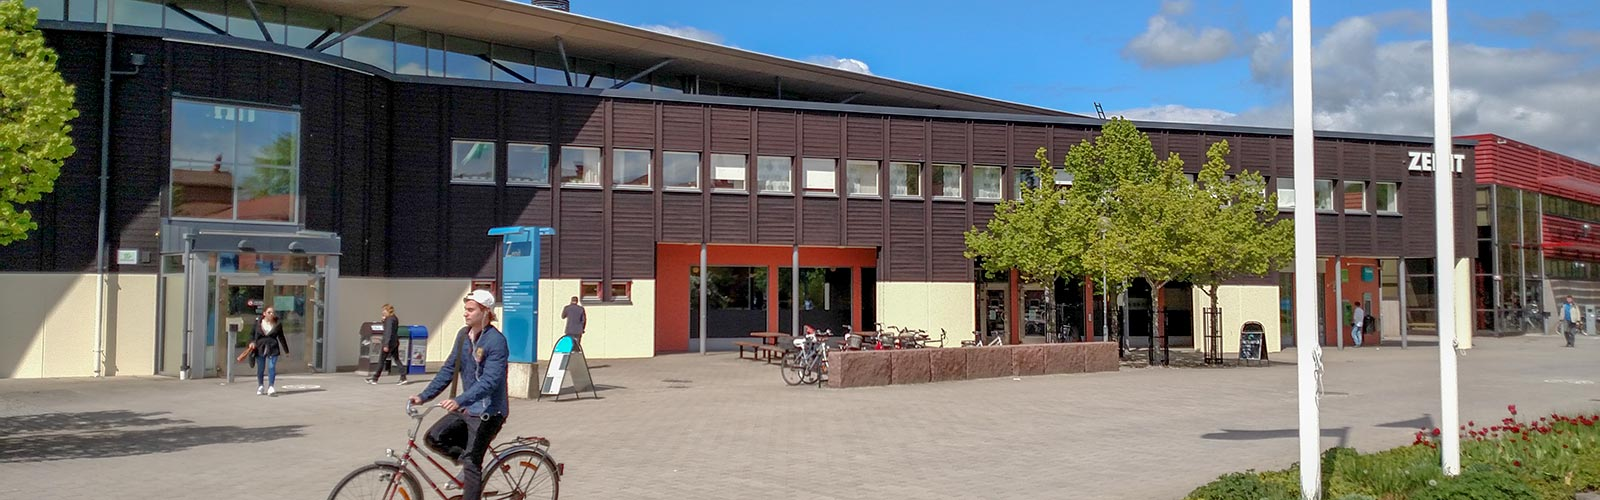 Linköping University building during a school day